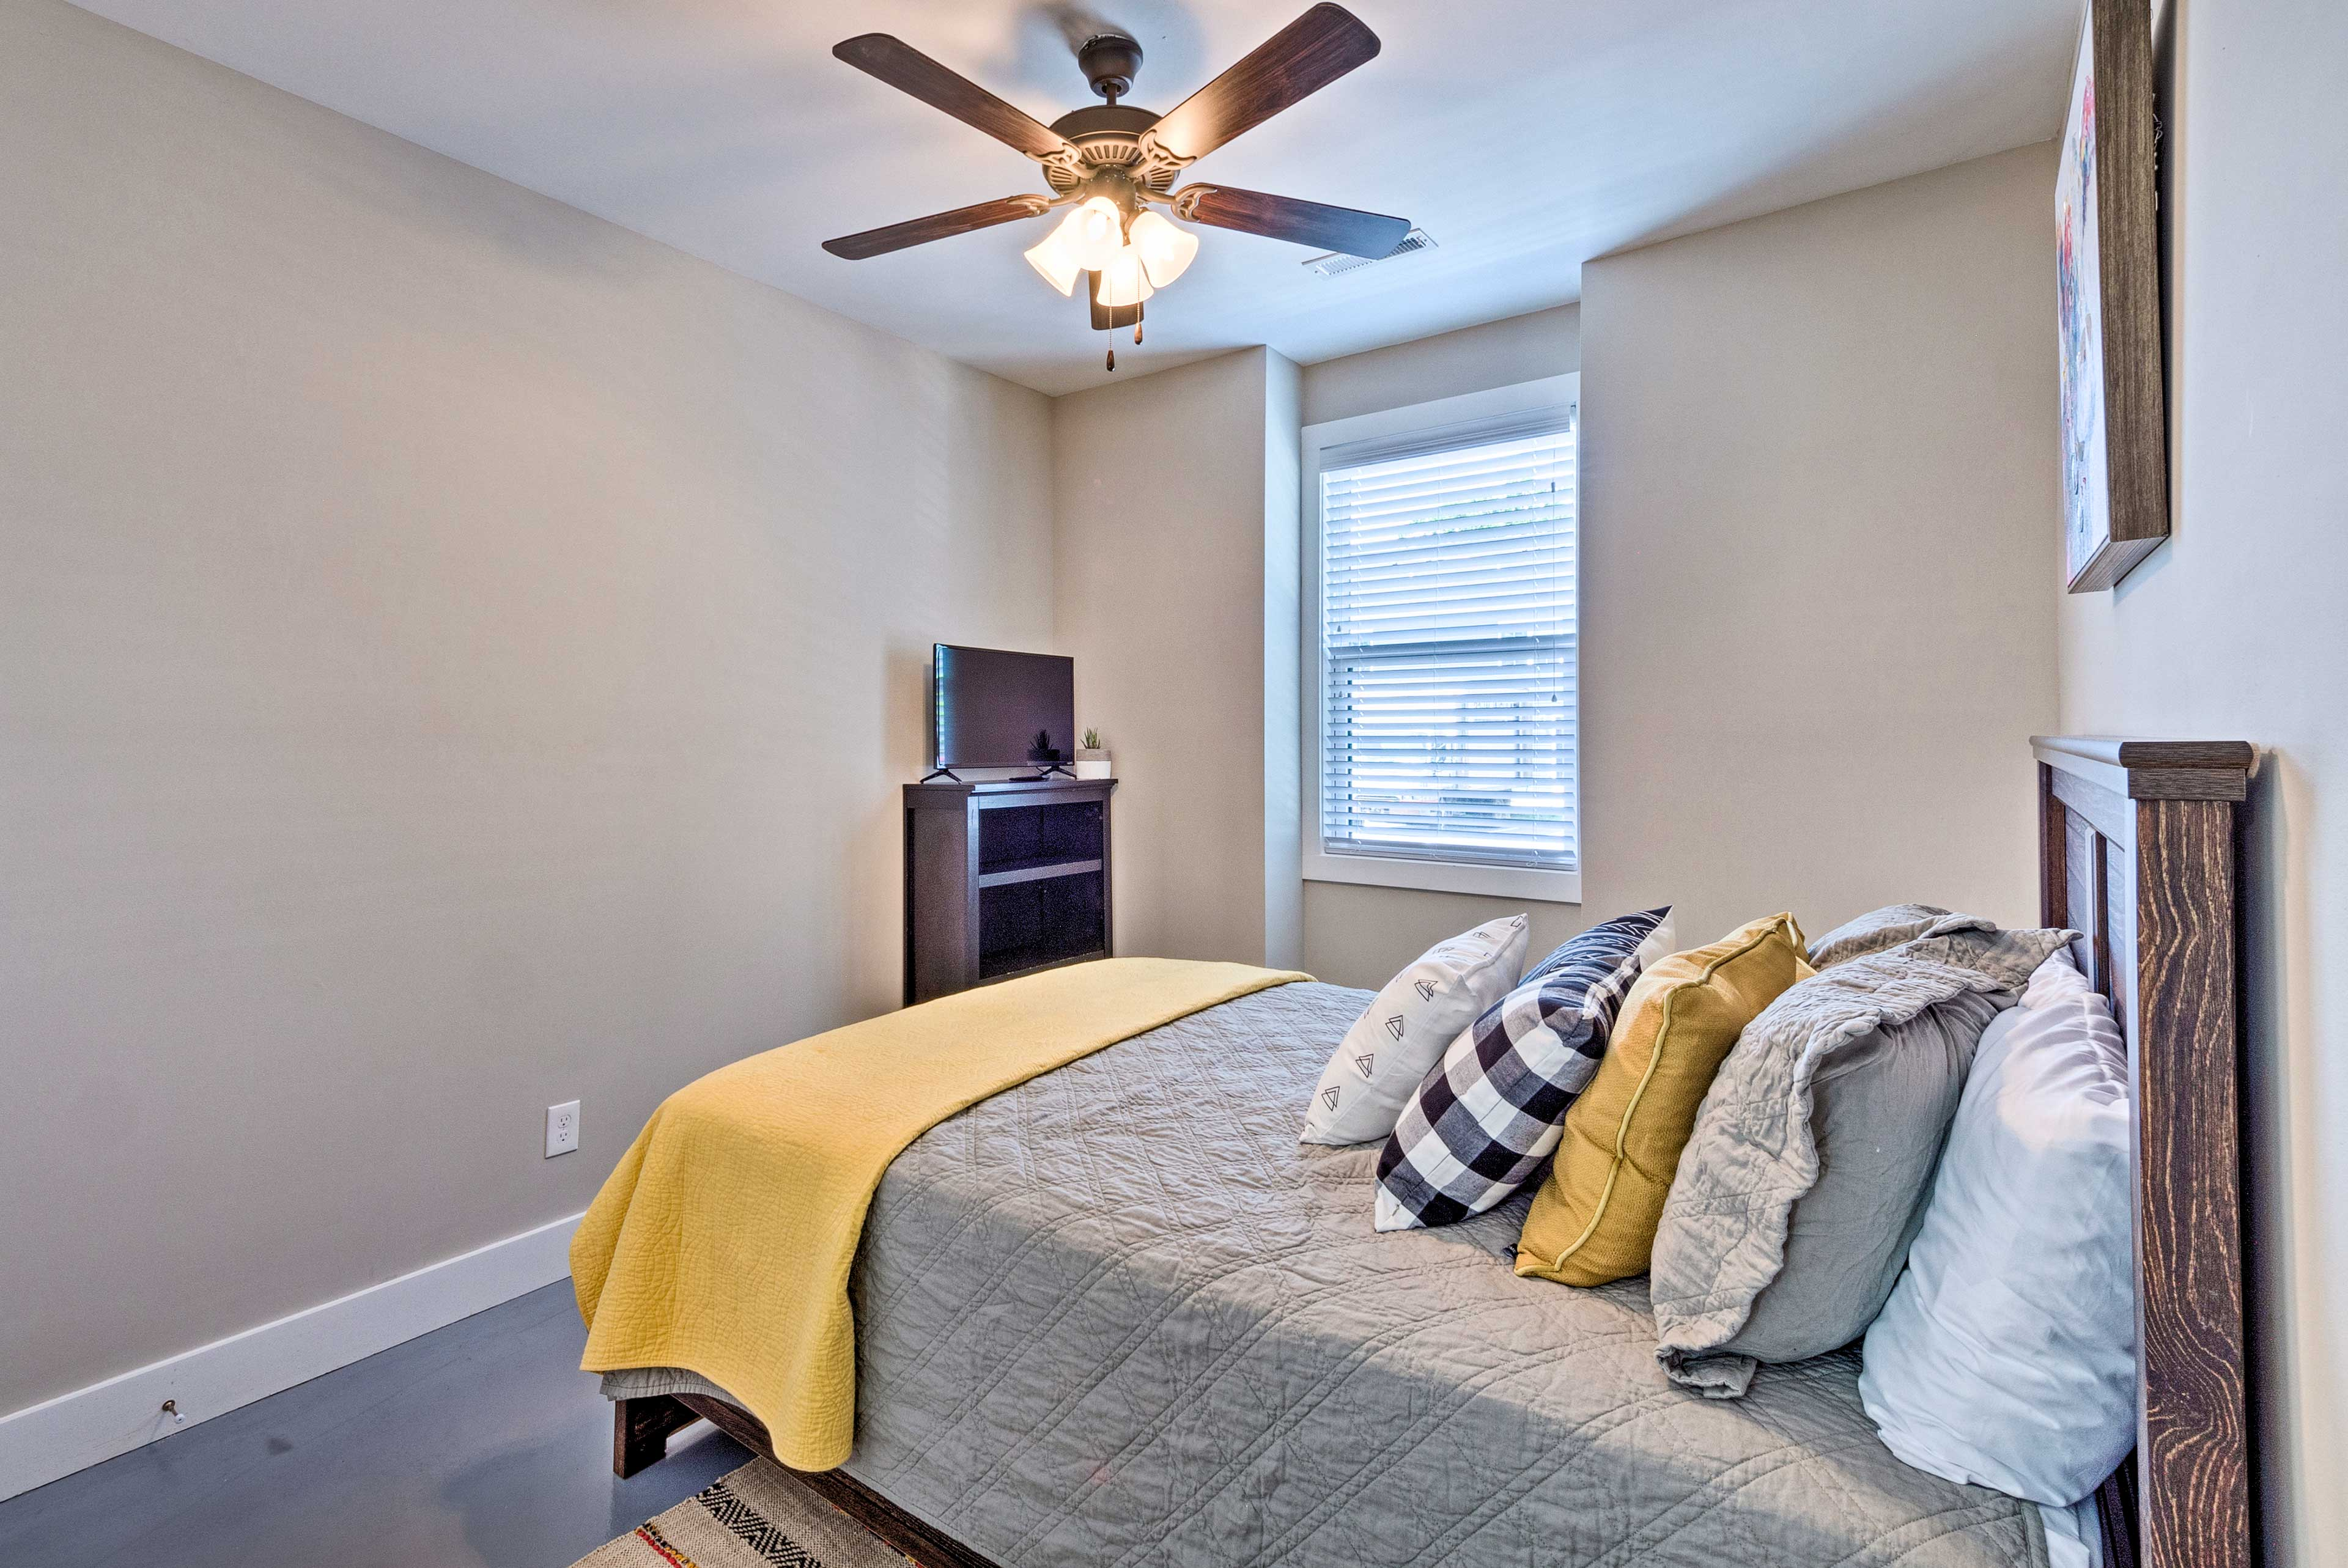 Enjoy a peaceful slumber in this queen bed.